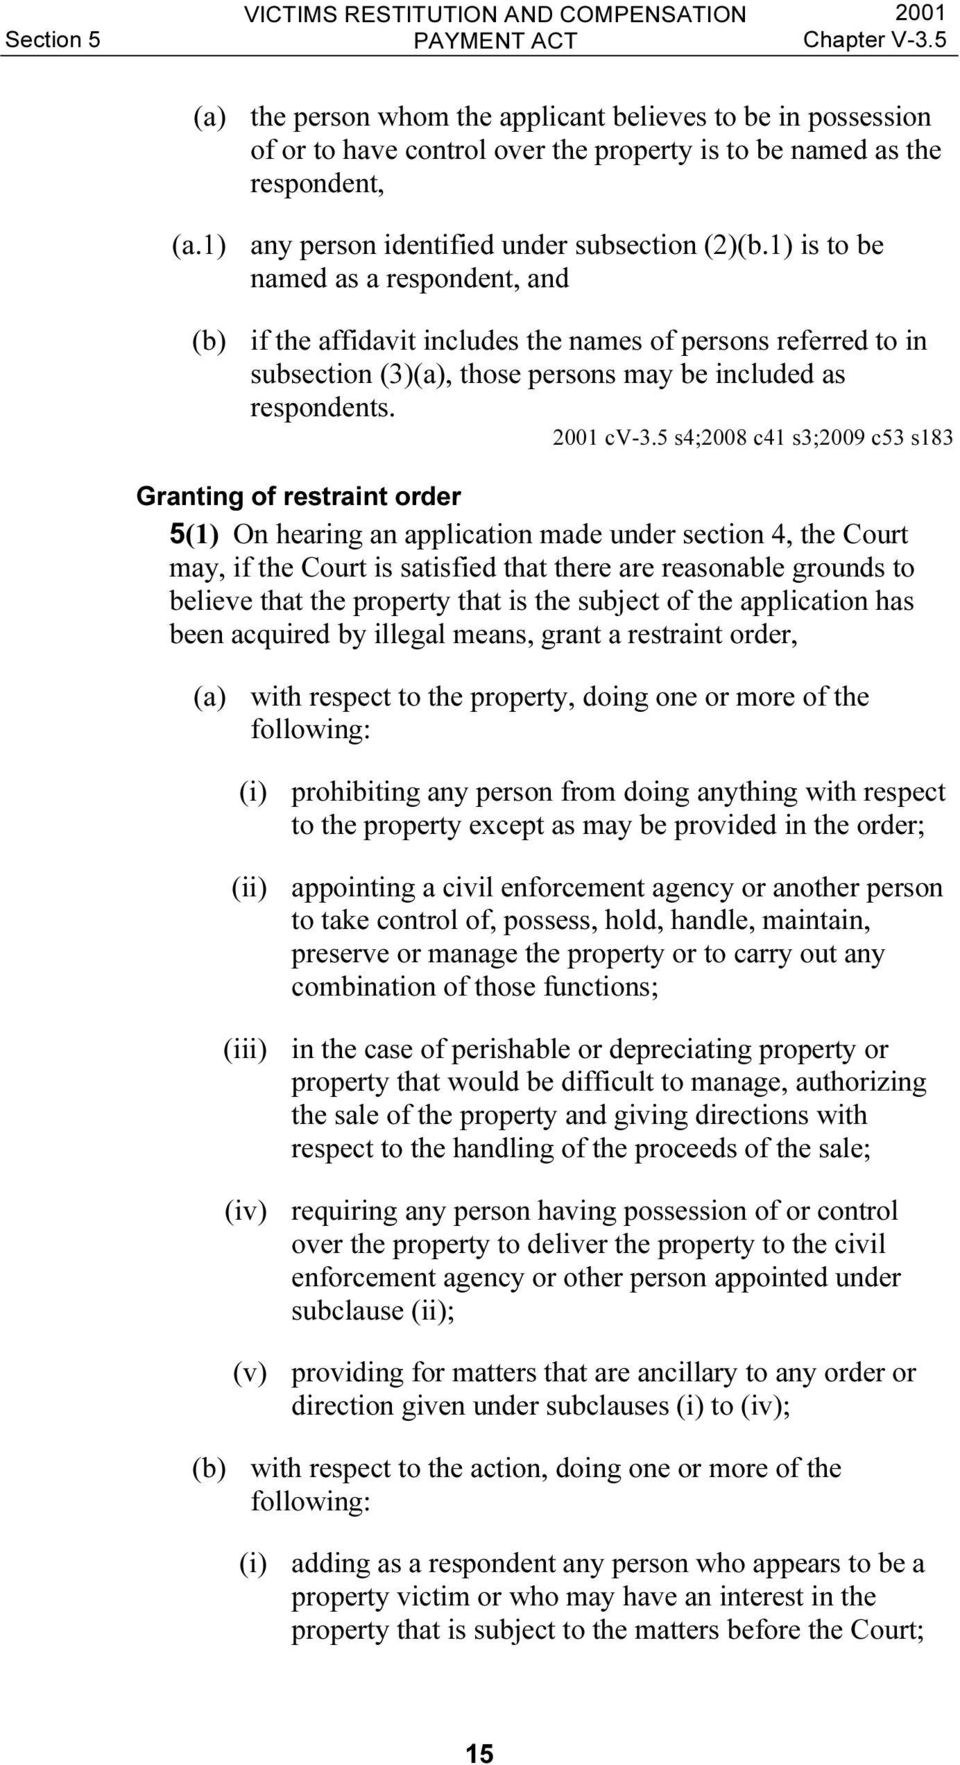 5 s4;2008 c41 s3;2009 c53 s183 Granting of restraint order 5(1) On hearing an application made under section 4, the Court may, if the Court is satisfied that there are reasonable grounds to believe